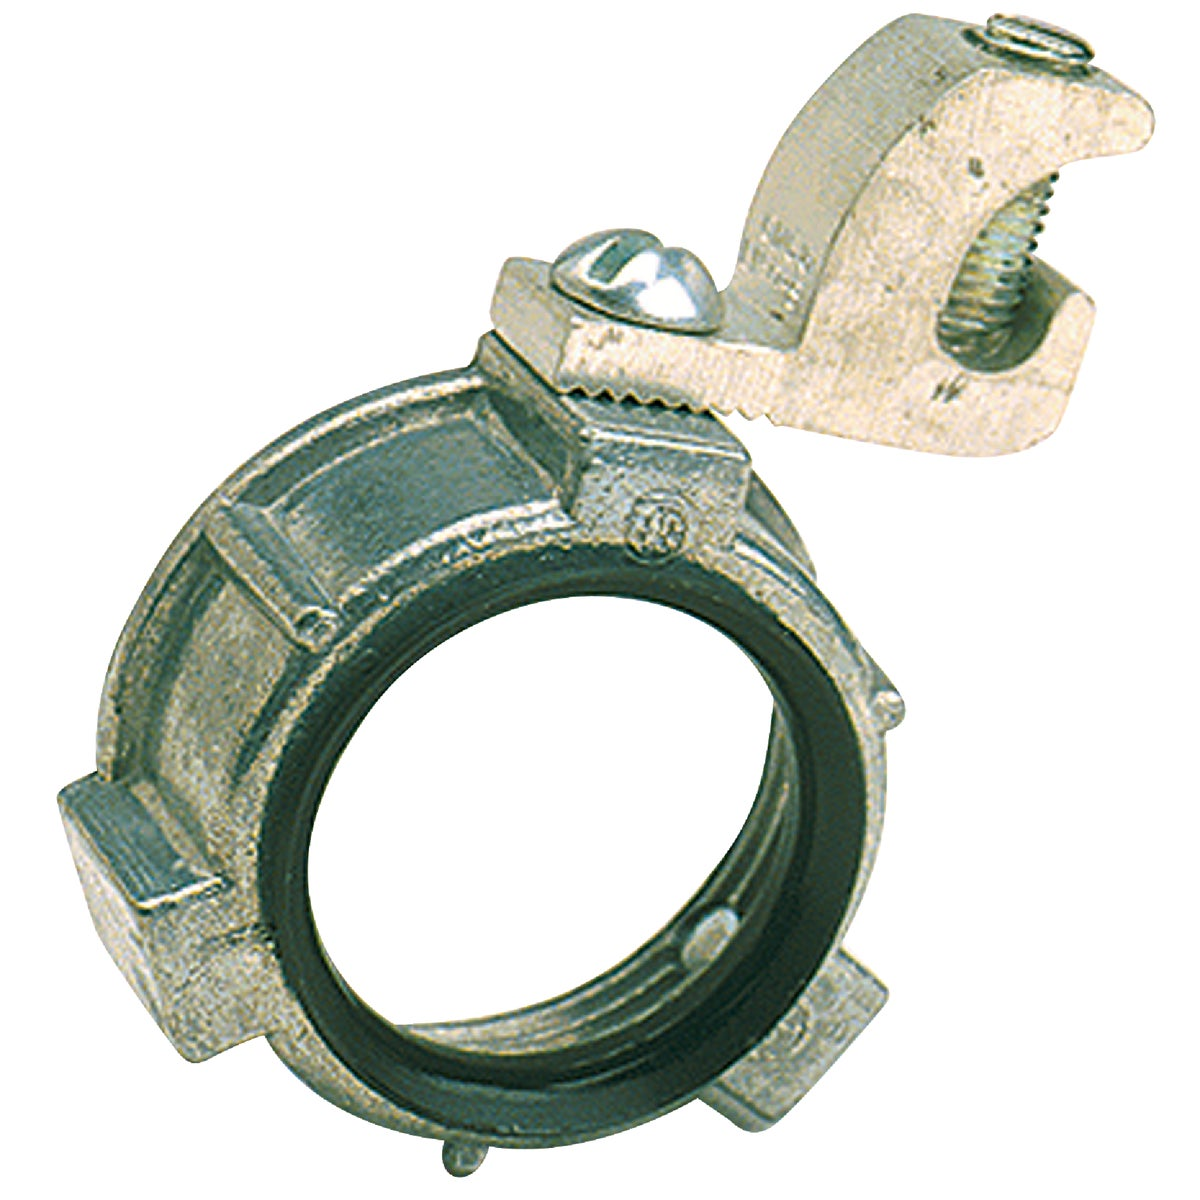 "3/4"" BUSHING - BG2021 by Thomas & Betts"